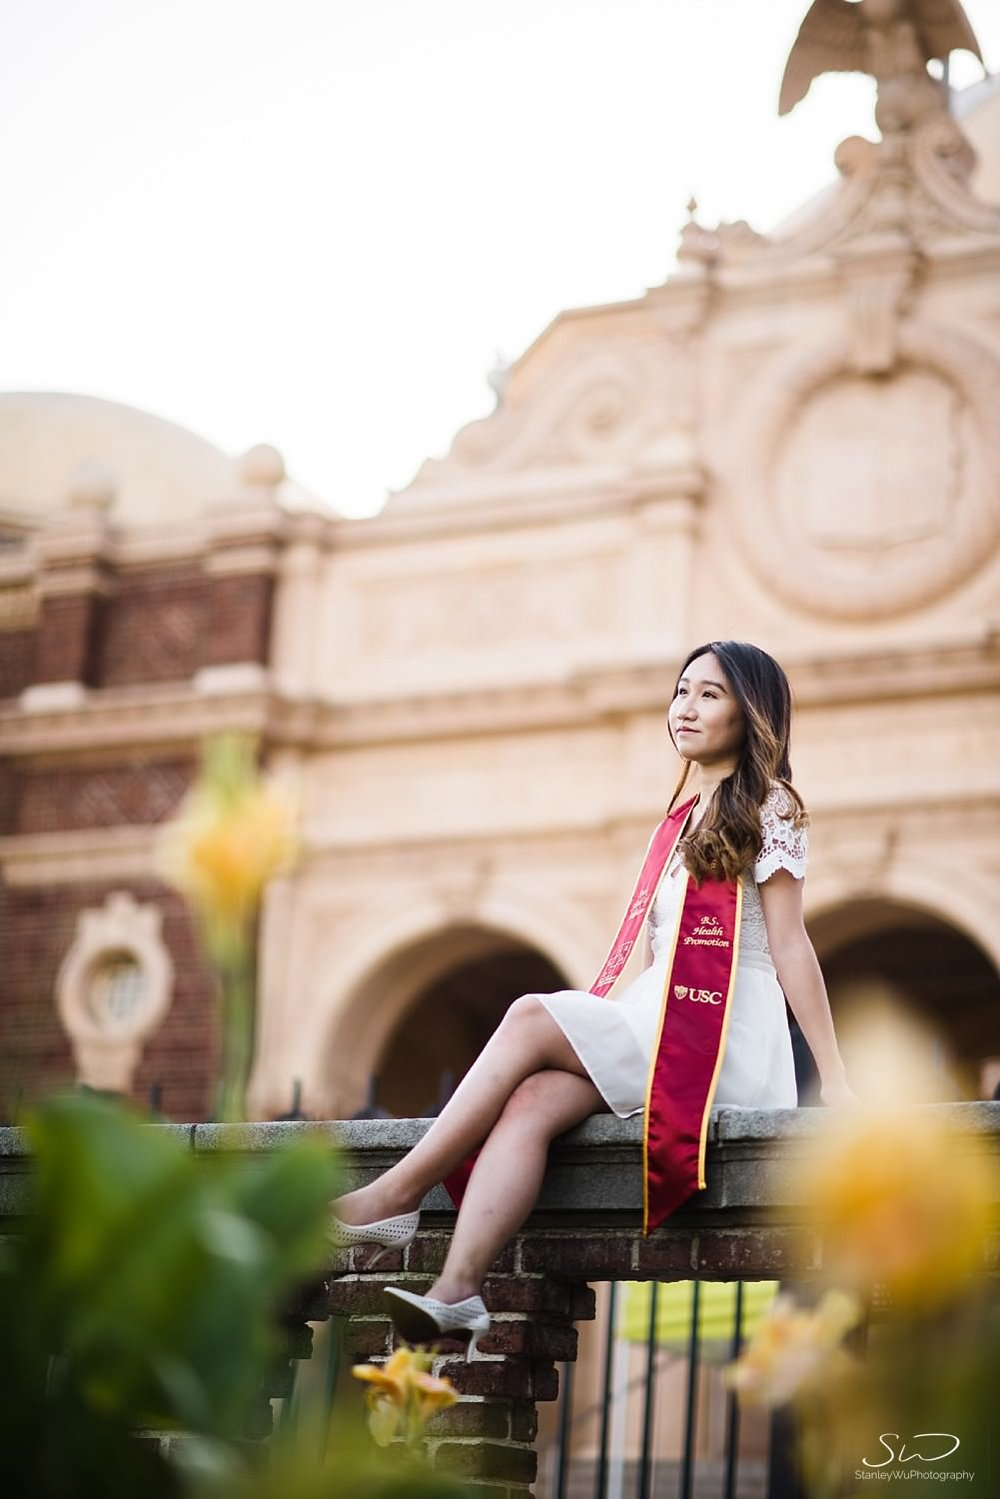 Epic portrait at the Rose Garden at USC | Los Angeles Orange County Senior Portrait & Wedding Photographer